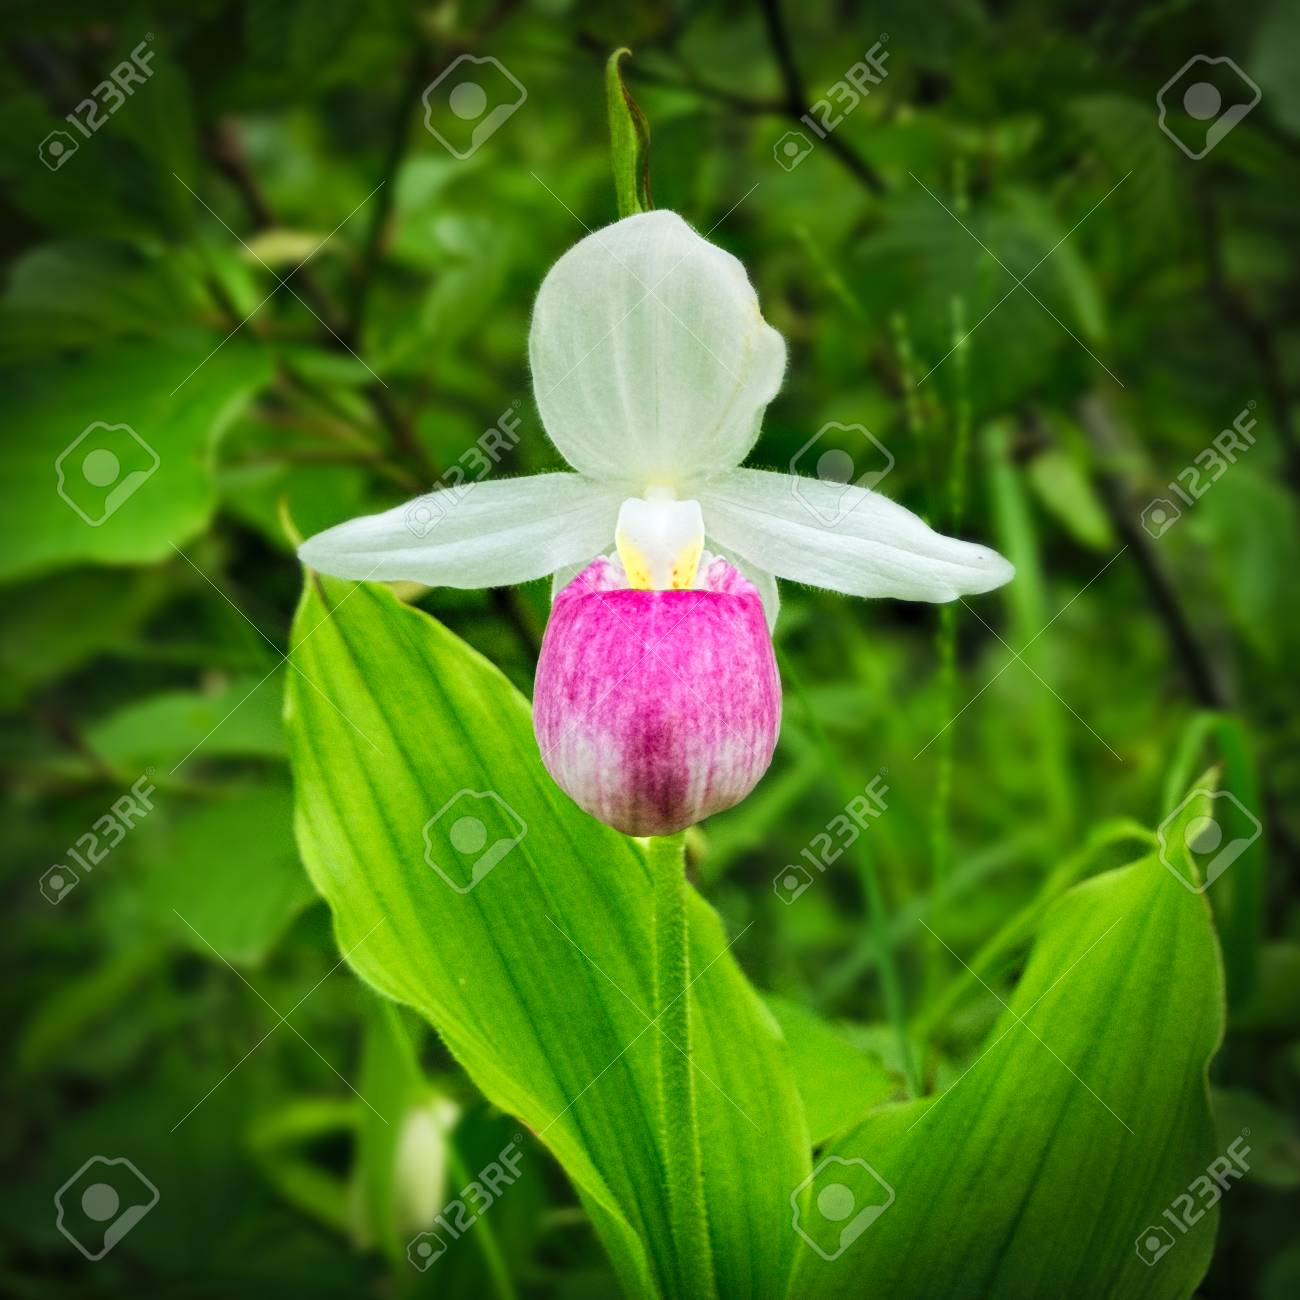 Showy Ladys Slipper Cypripedium Reginae Also Known As Pink And